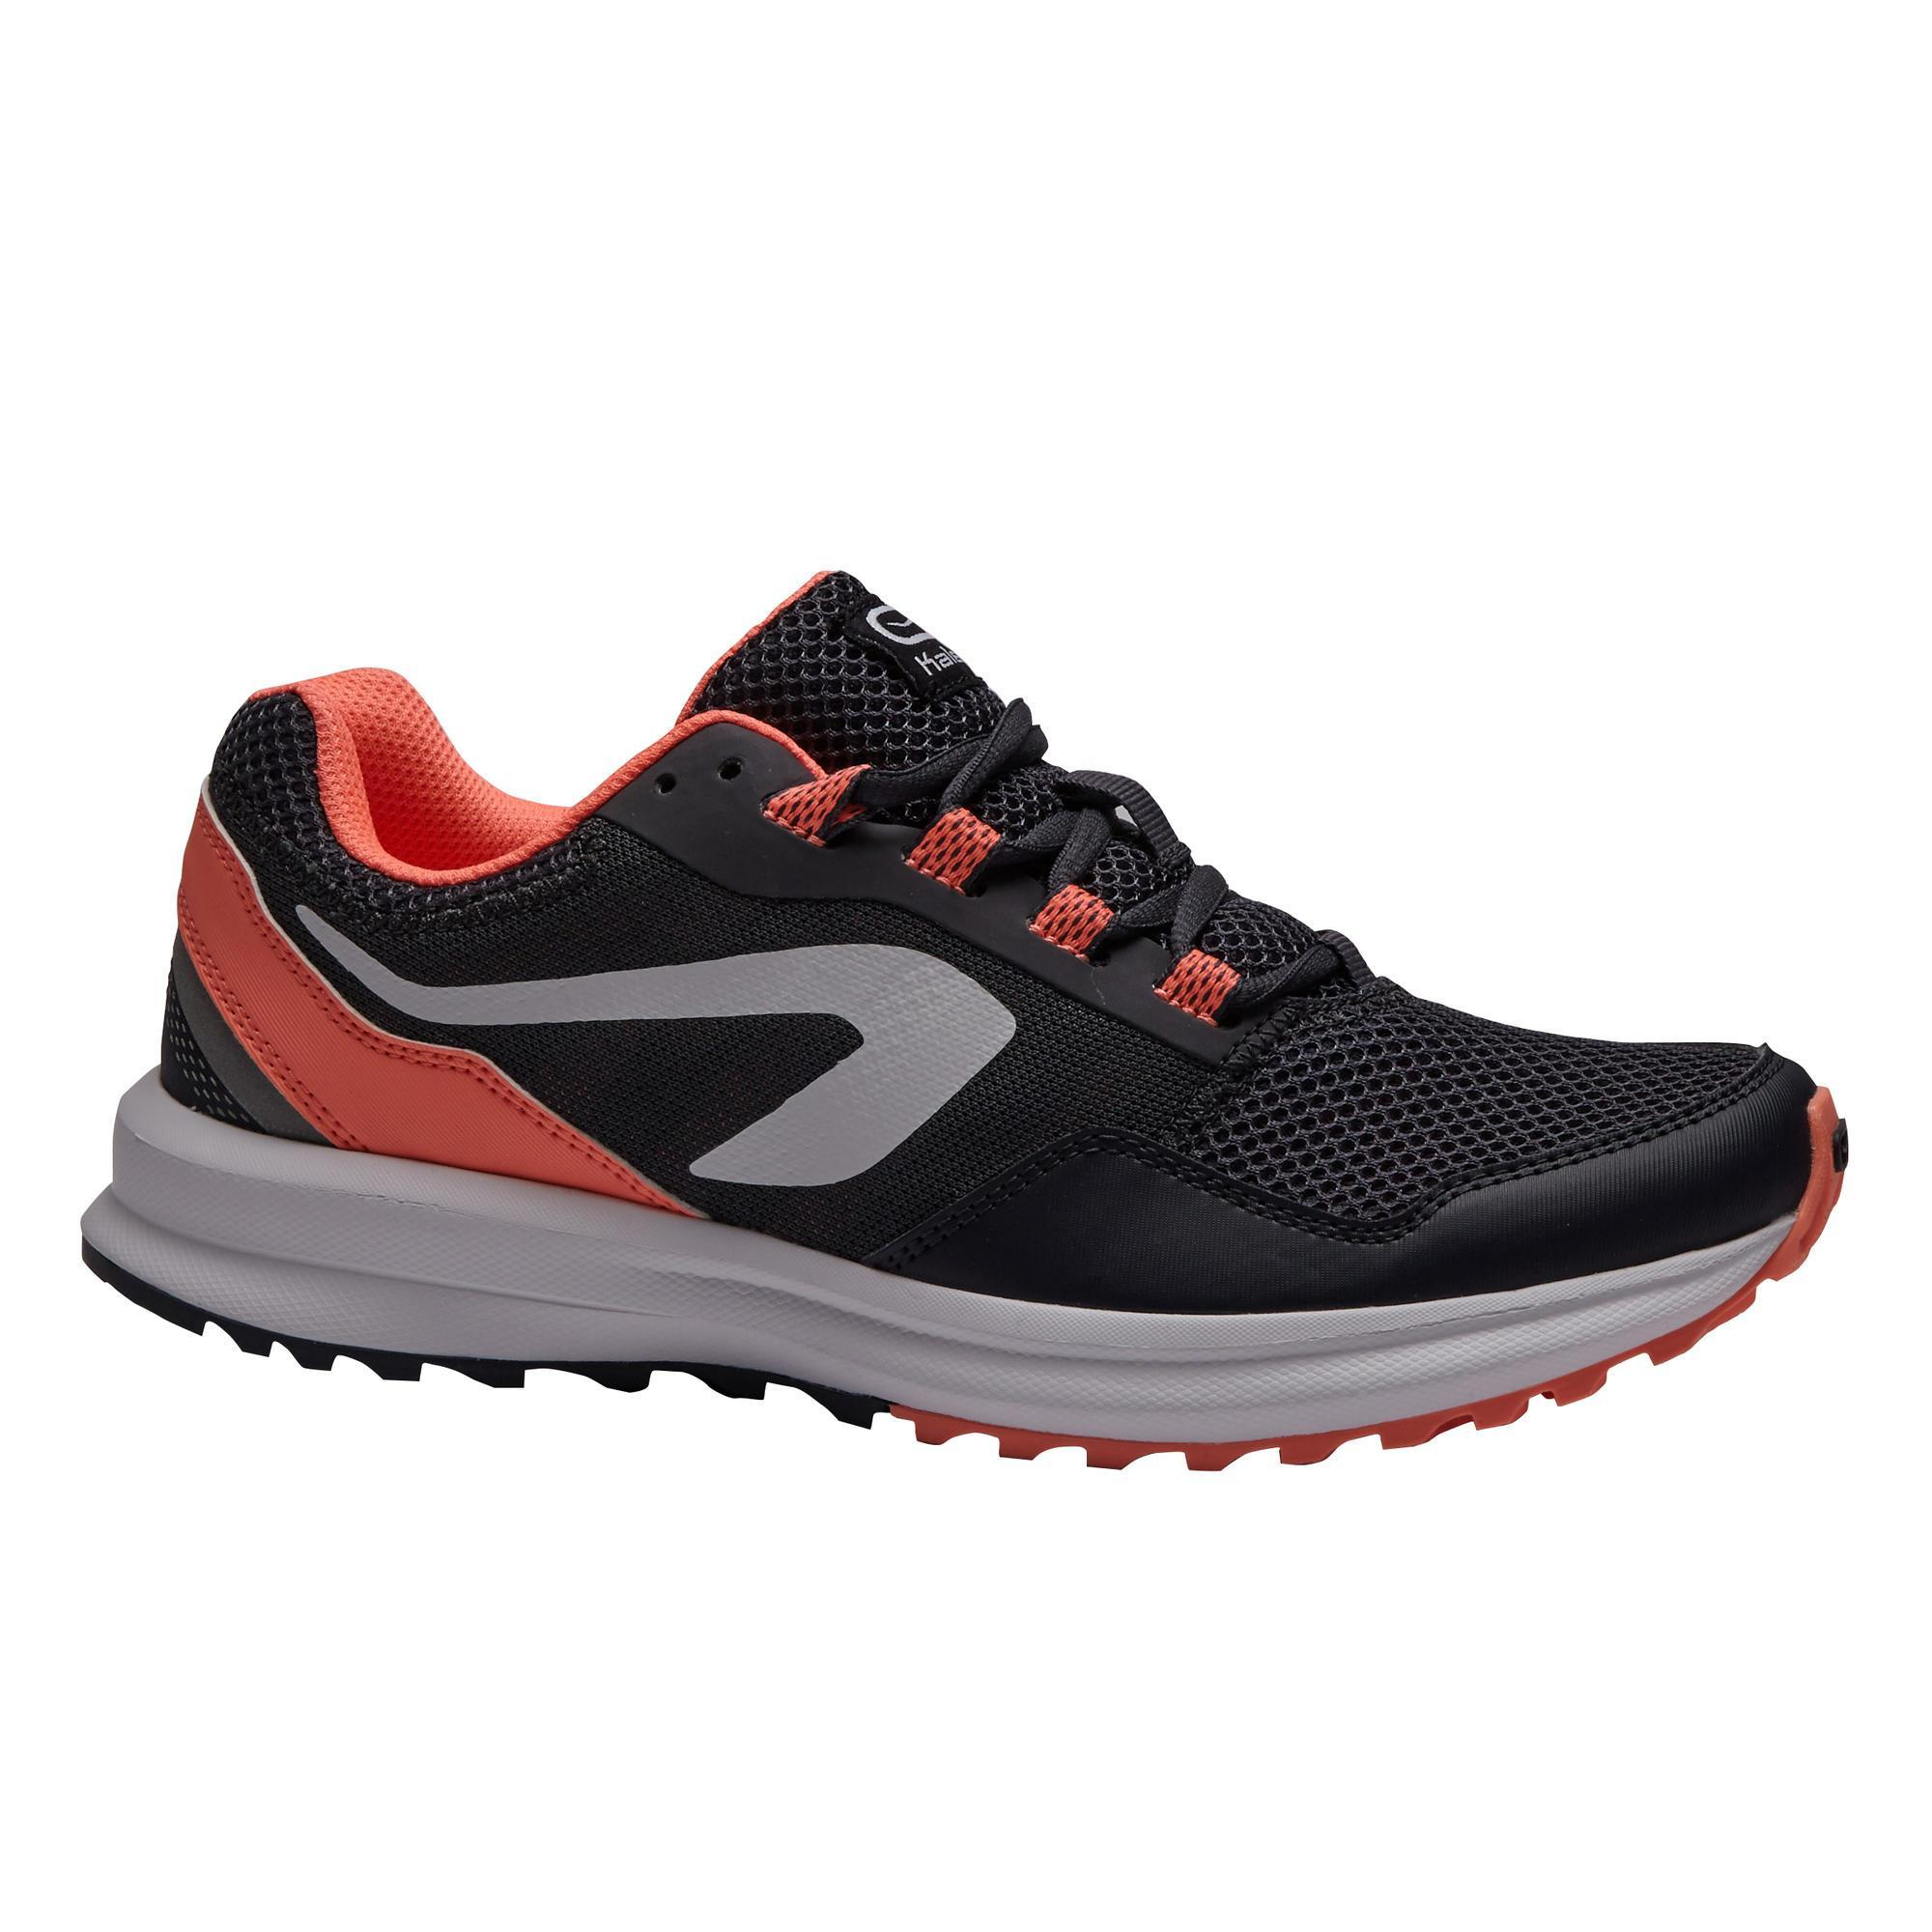 Laufschuhe Run Active Grip Damen grau/koralle